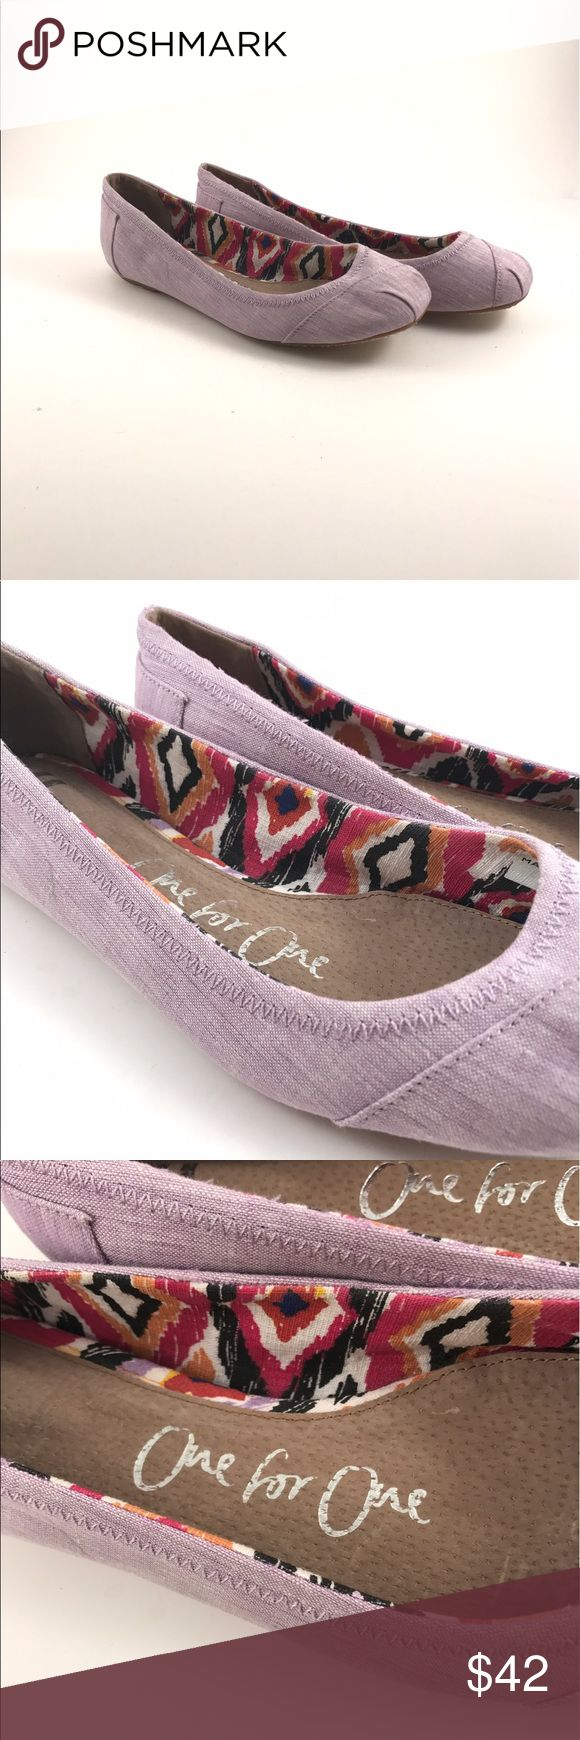 TOMS light purple One for One woman's shoes TOMS One for One light purple woman's shoes. Pre-owned see pictures for condition. Woman's size 9.5 Toms Shoes Flats & Loafers